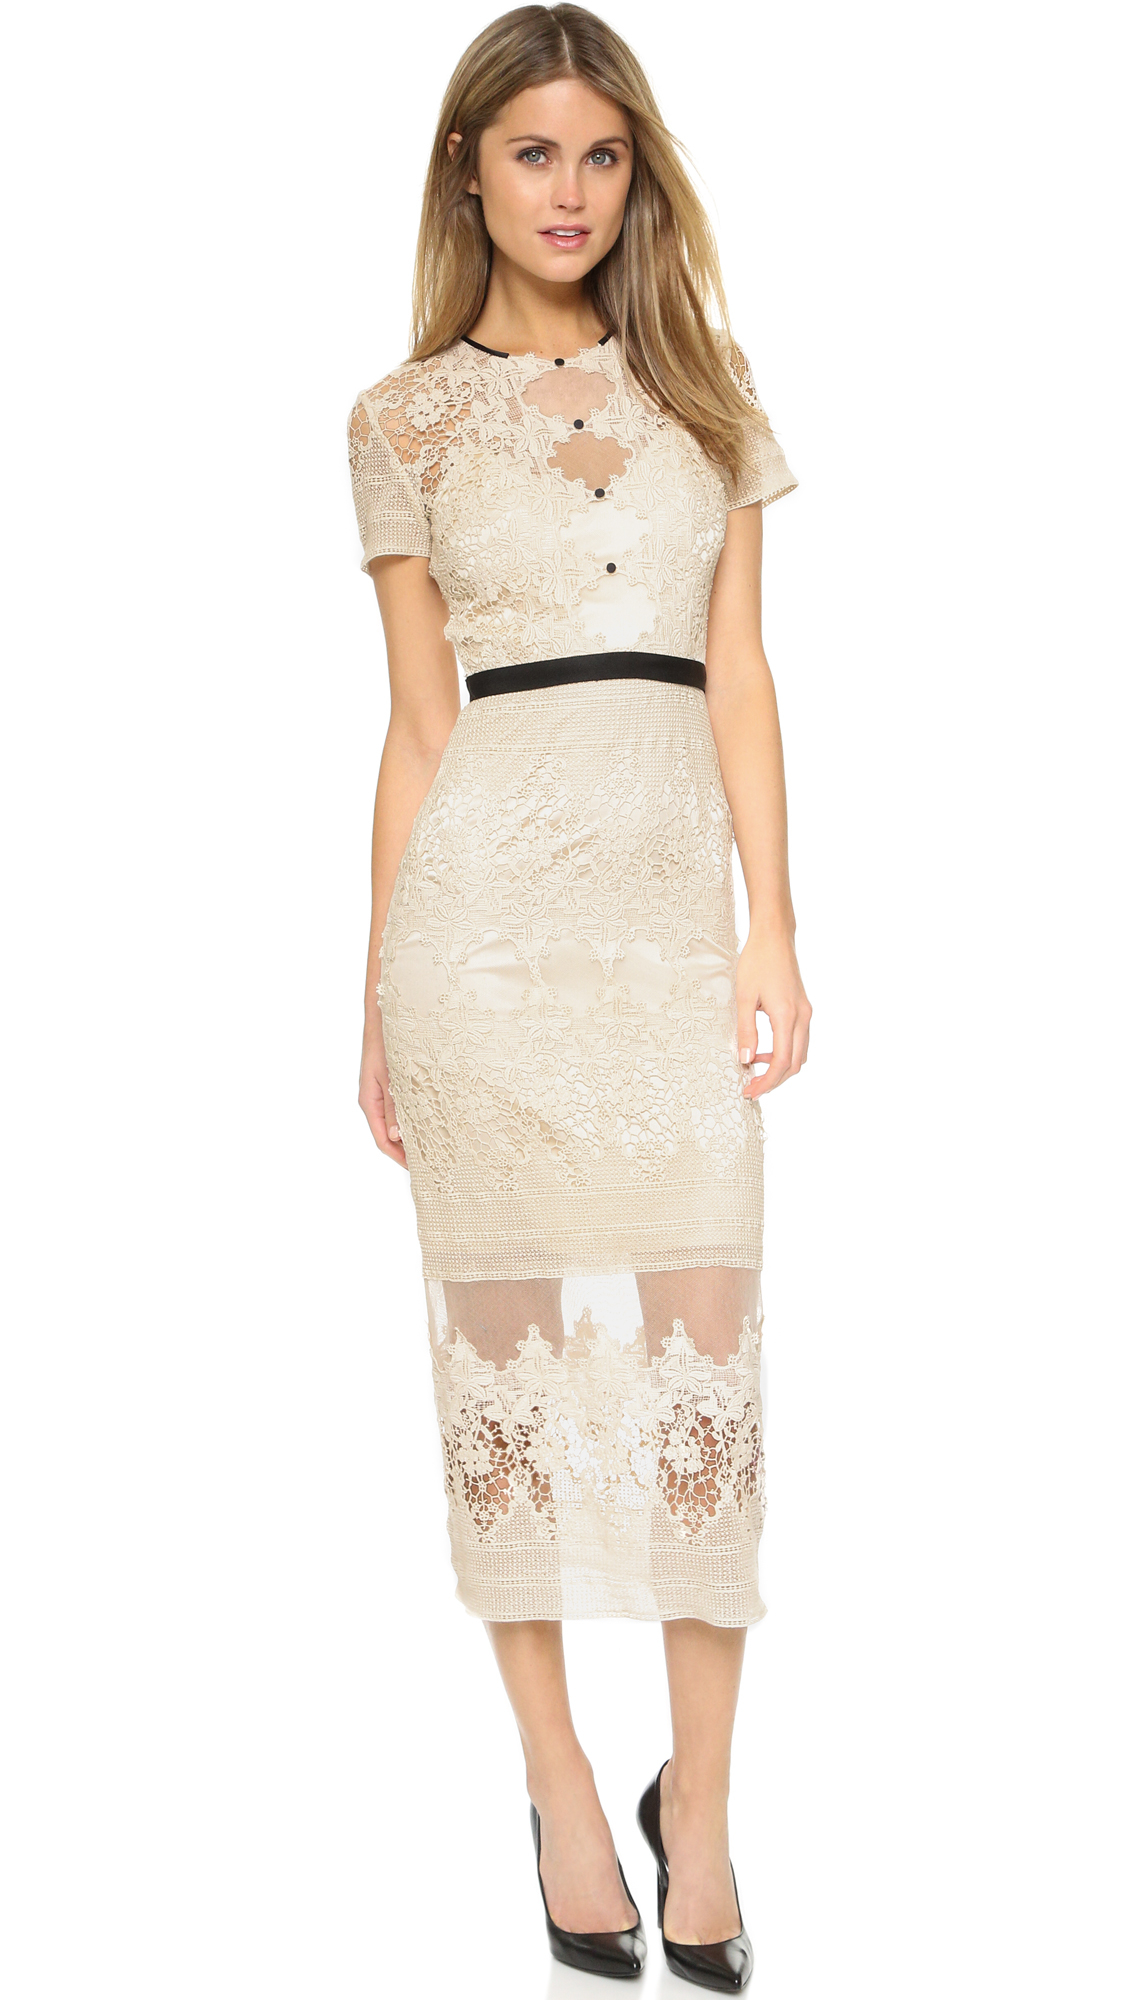 Lyst - Catherine Deane Forever Dress in Natural